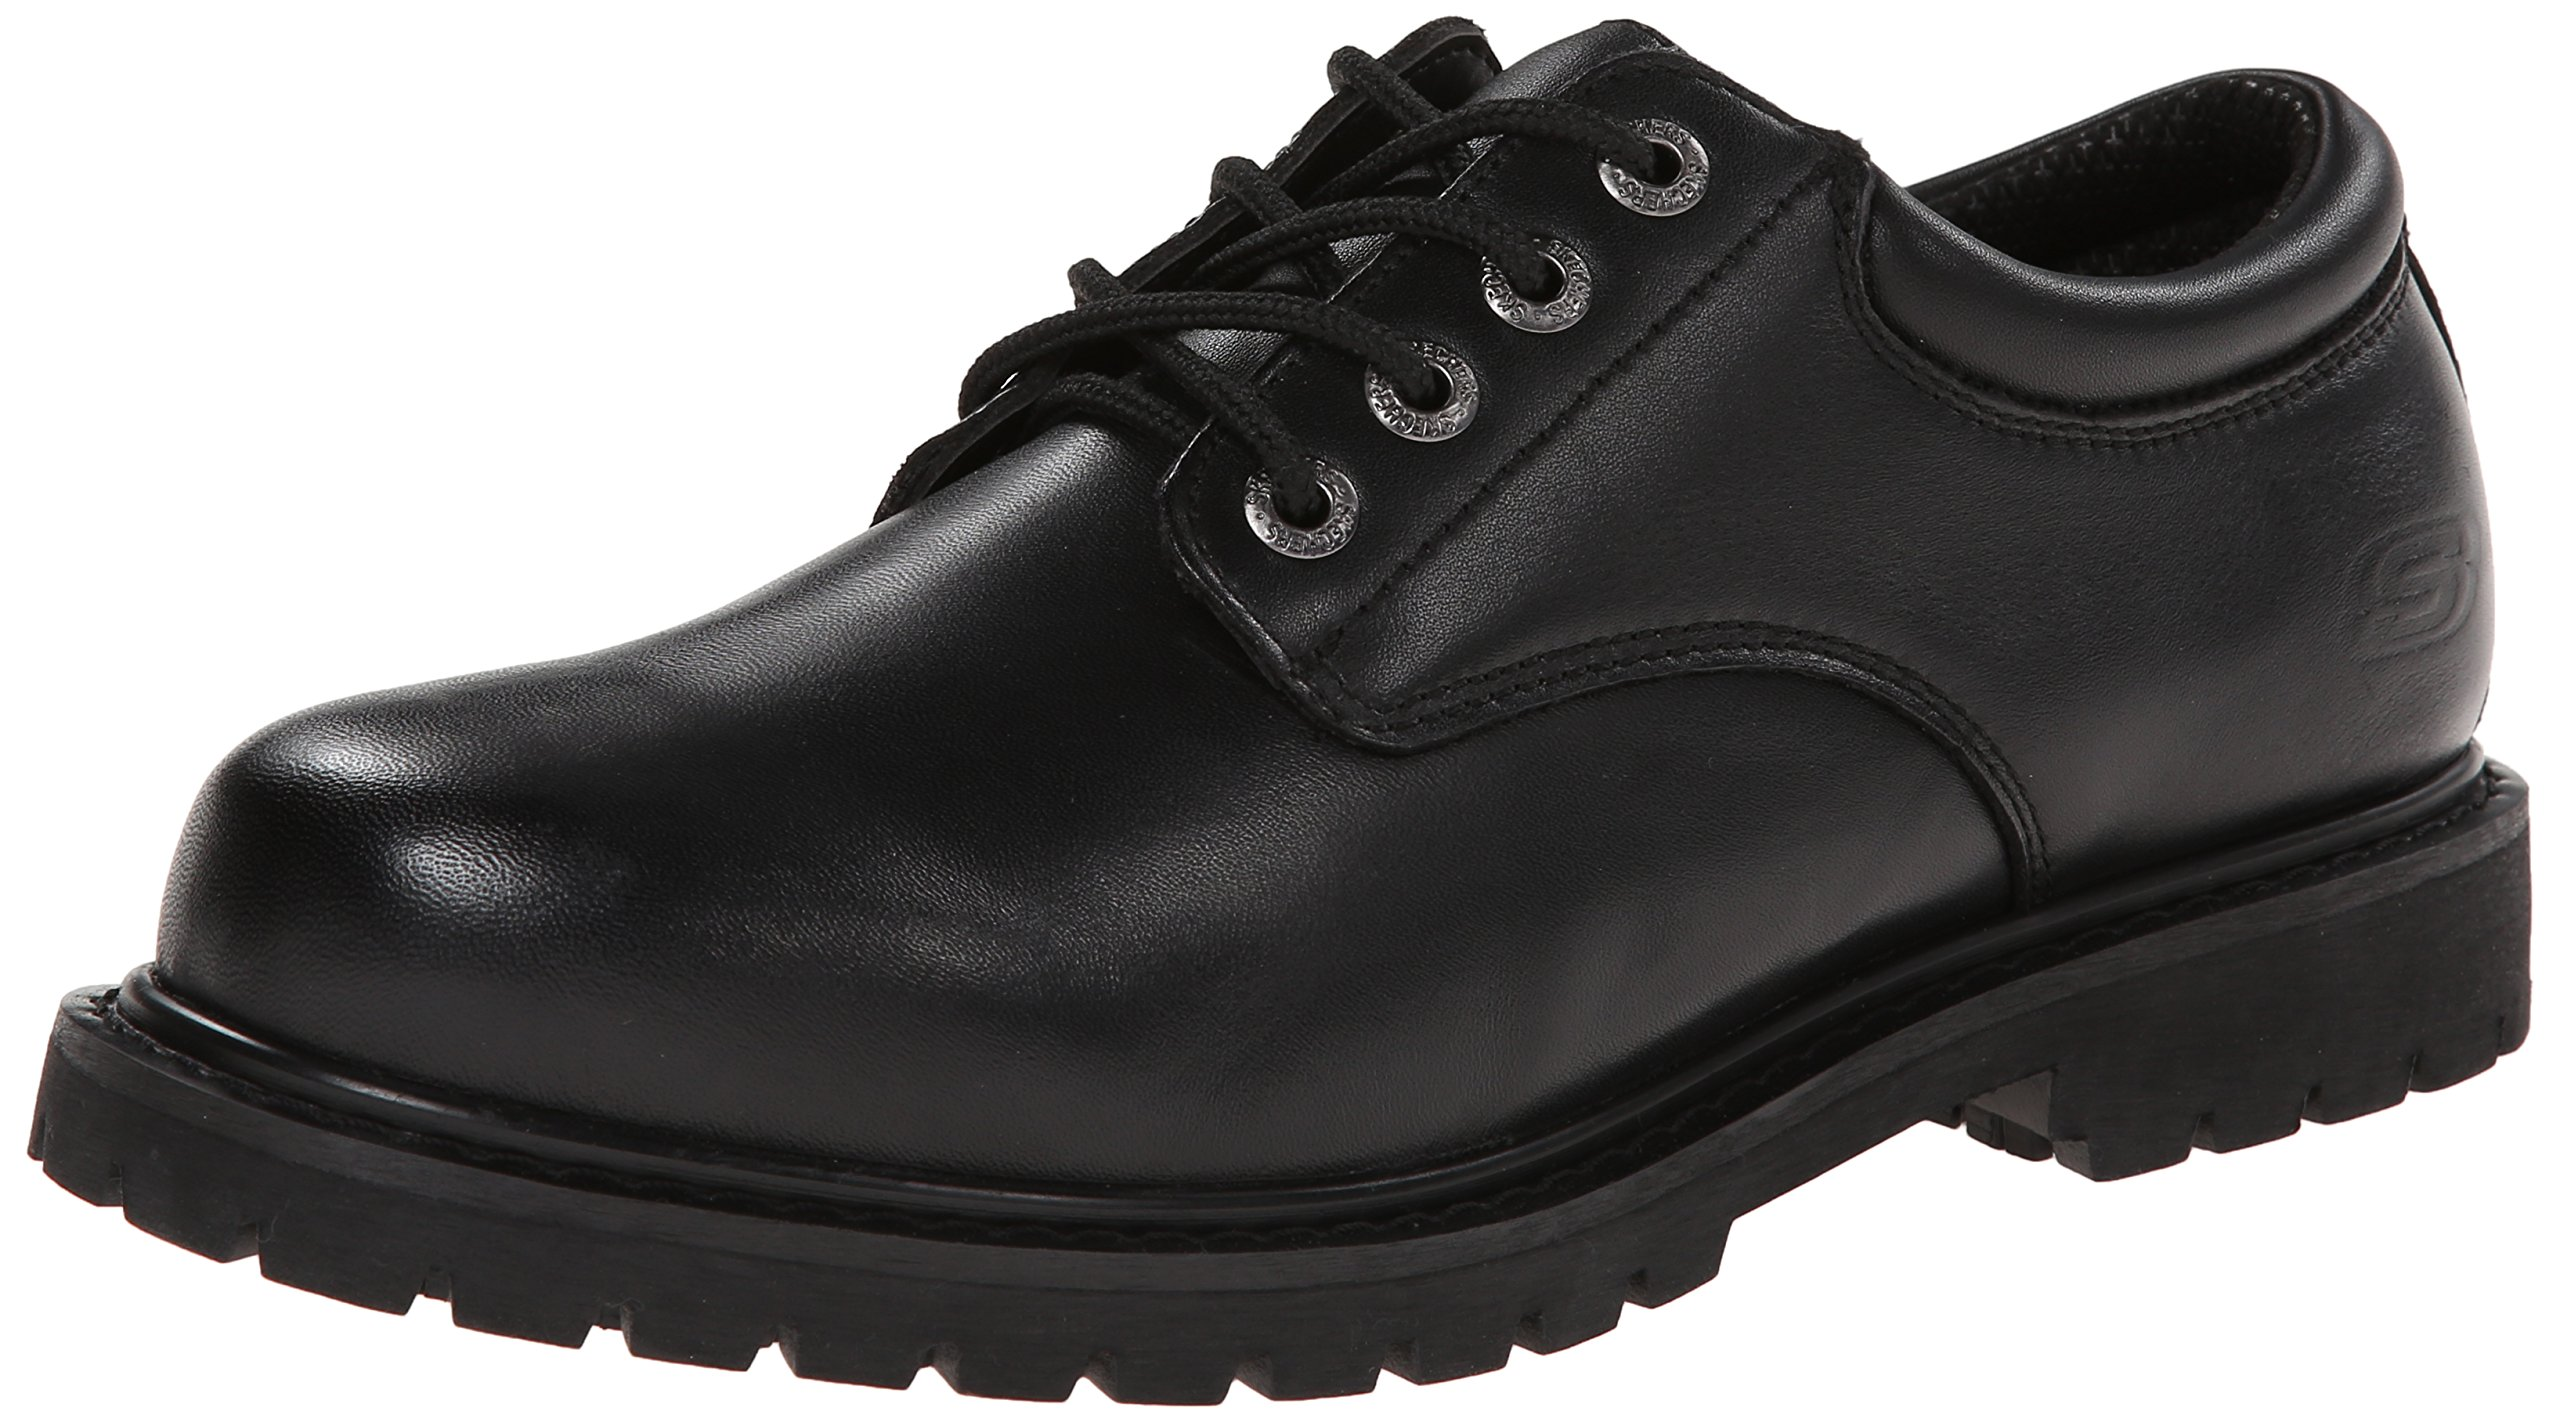 Skechers Men's, Cottonwood Elks Lace up Work Shoe Black 15 M by Skechers